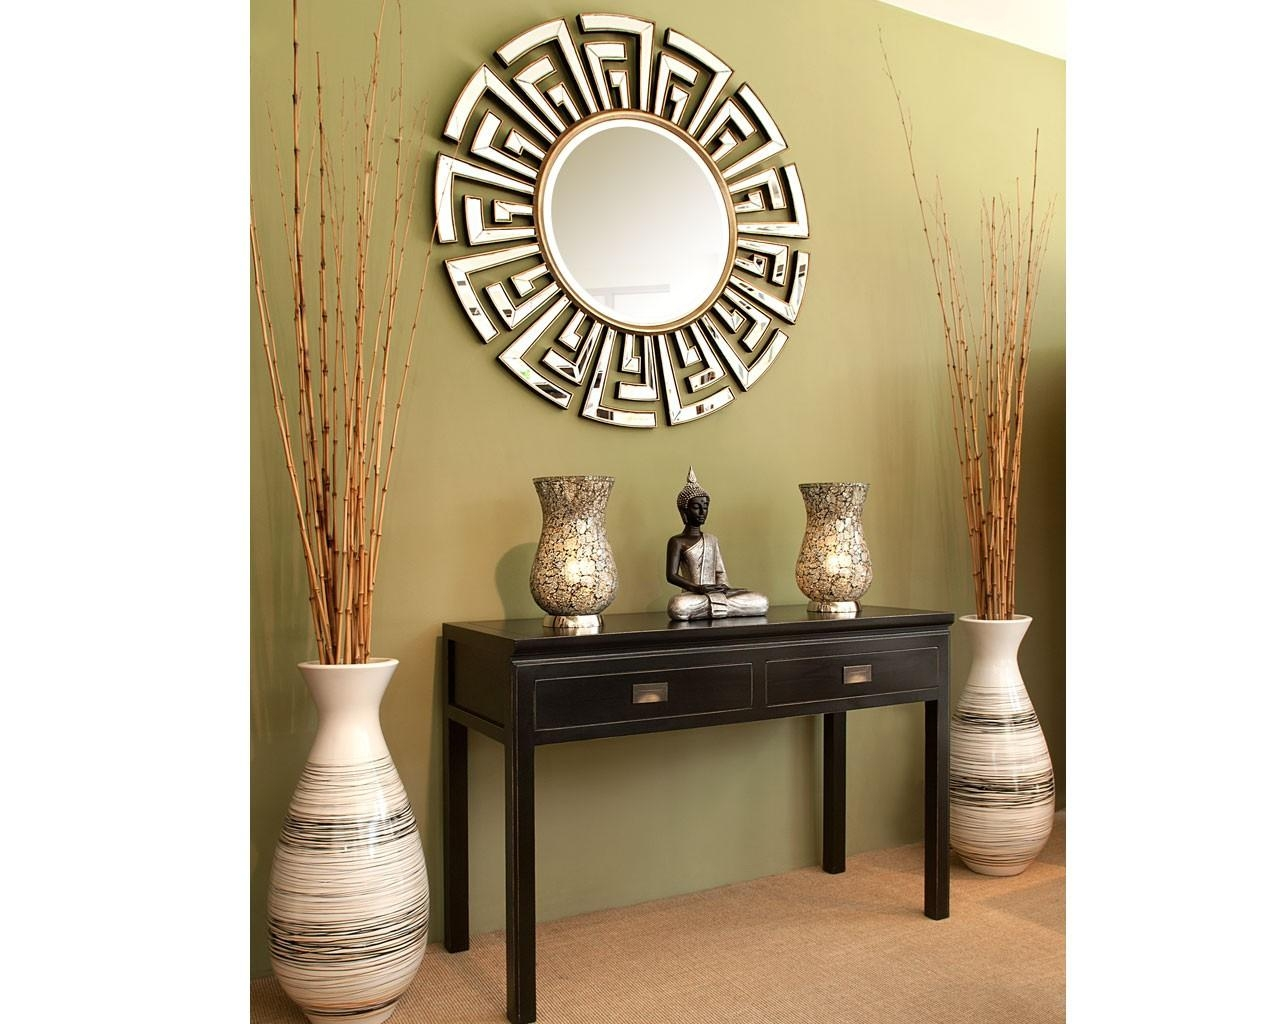 Contemporary Art Deco Round Mirror | Statement Circular Mirrors Regarding Large Art Deco Mirror (View 11 of 20)